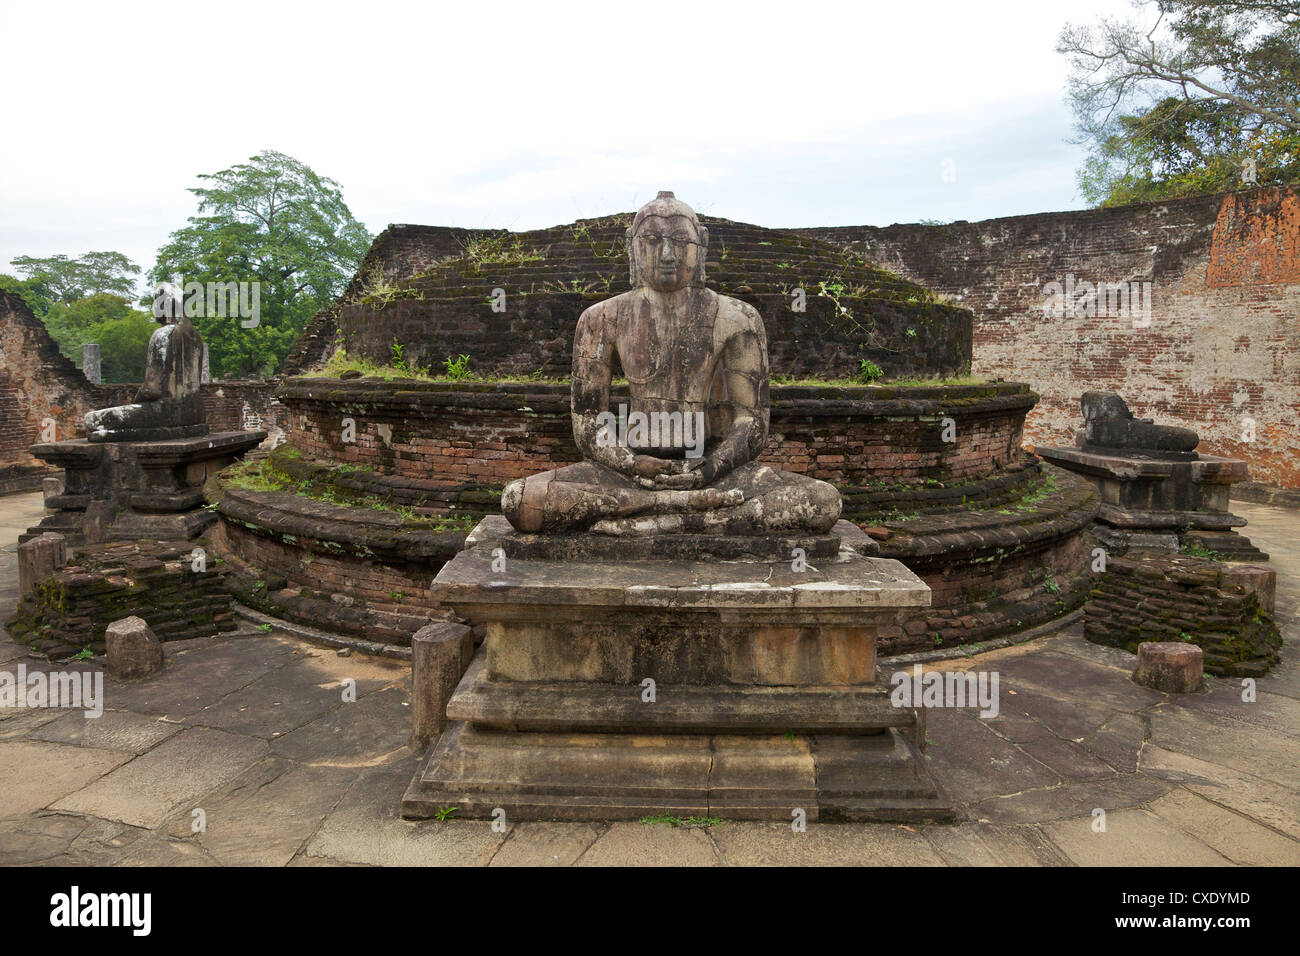 One of the Buddha statues on the upper platform, next to the stupa, Vatadage, Polonnaruwa, UNESCO World Heritage - Stock Image